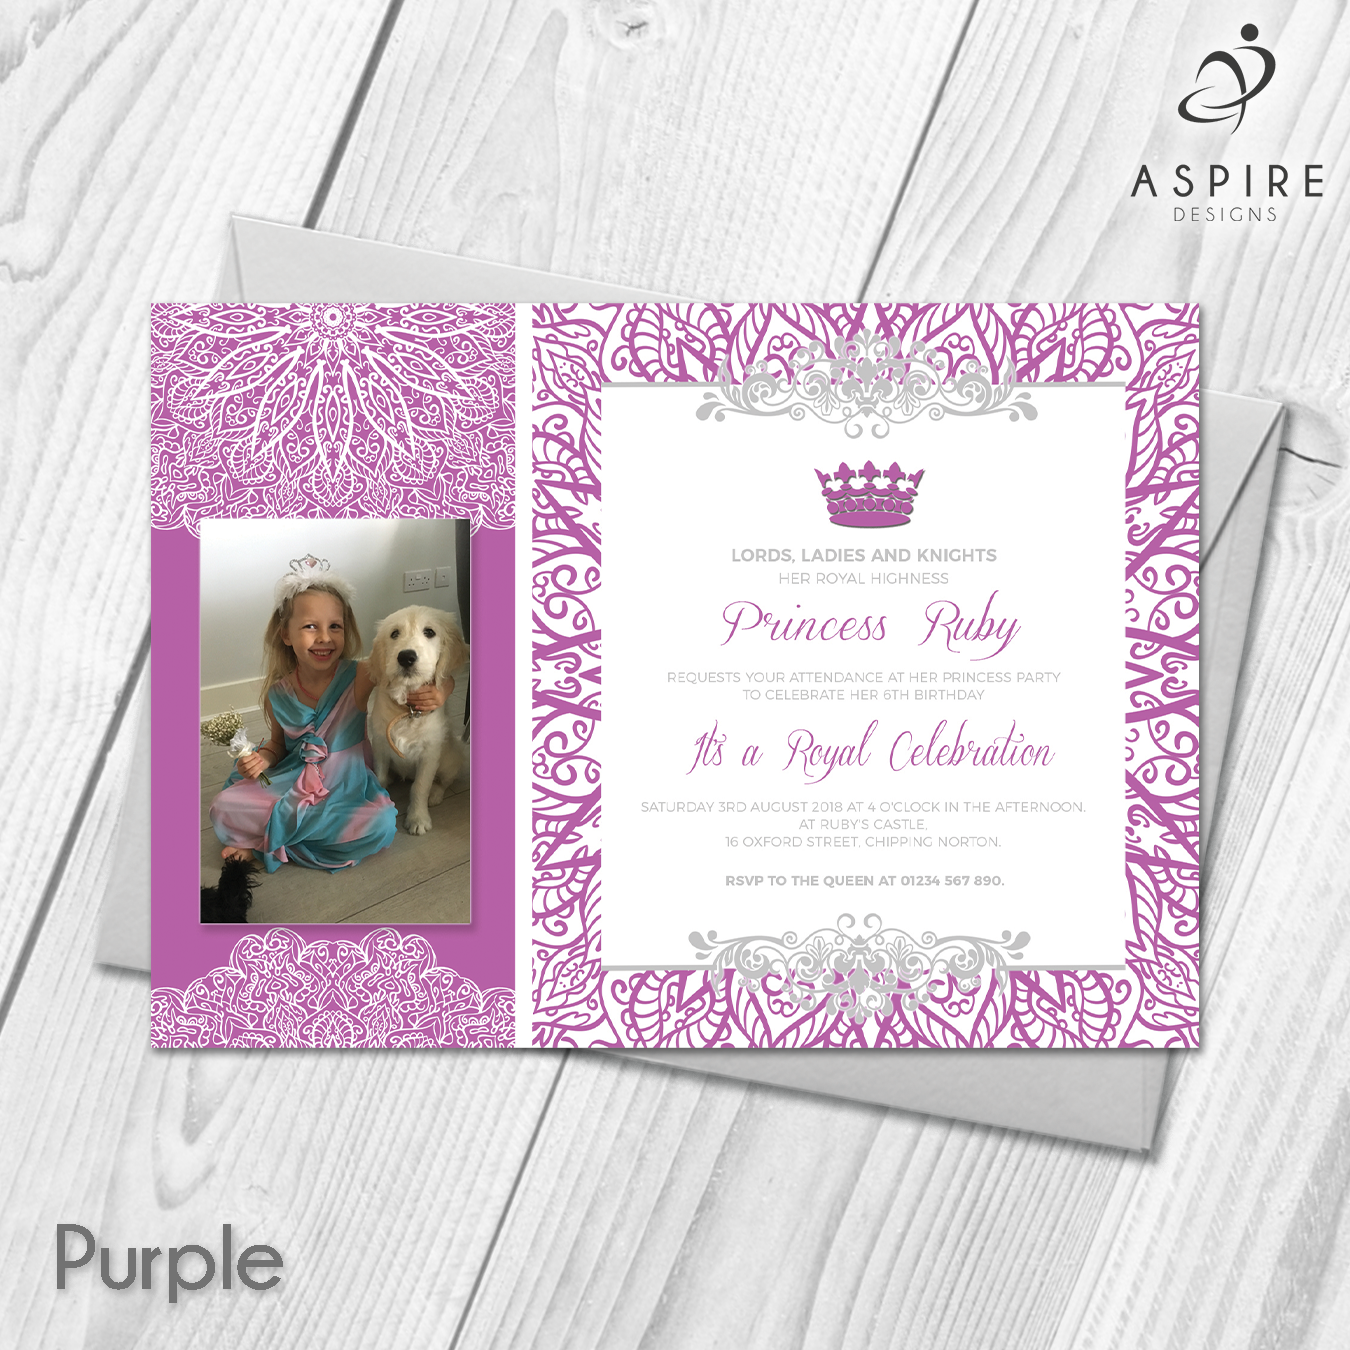 Personalised girls princess birthday party invitations with photo personalised princess girls birthday party invitations cards with photo custom made with your own photos and text all orders include free uk 1st class royal stopboris Image collections